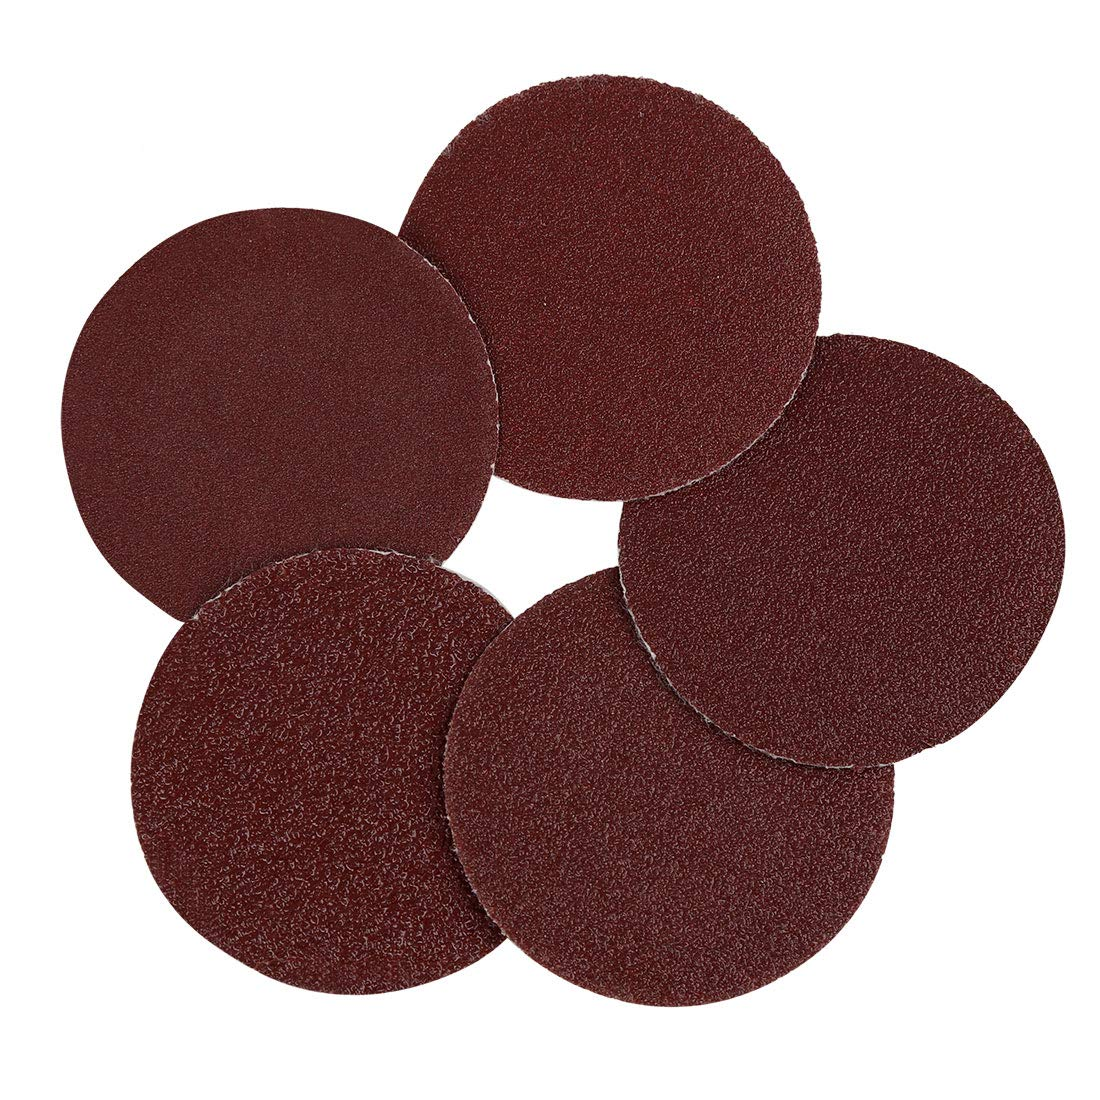 uxcell 50pcs 2 Inch Hook and Loop Sanding Discs 60 80 100 120 150 Assorted Grits Sandpaper